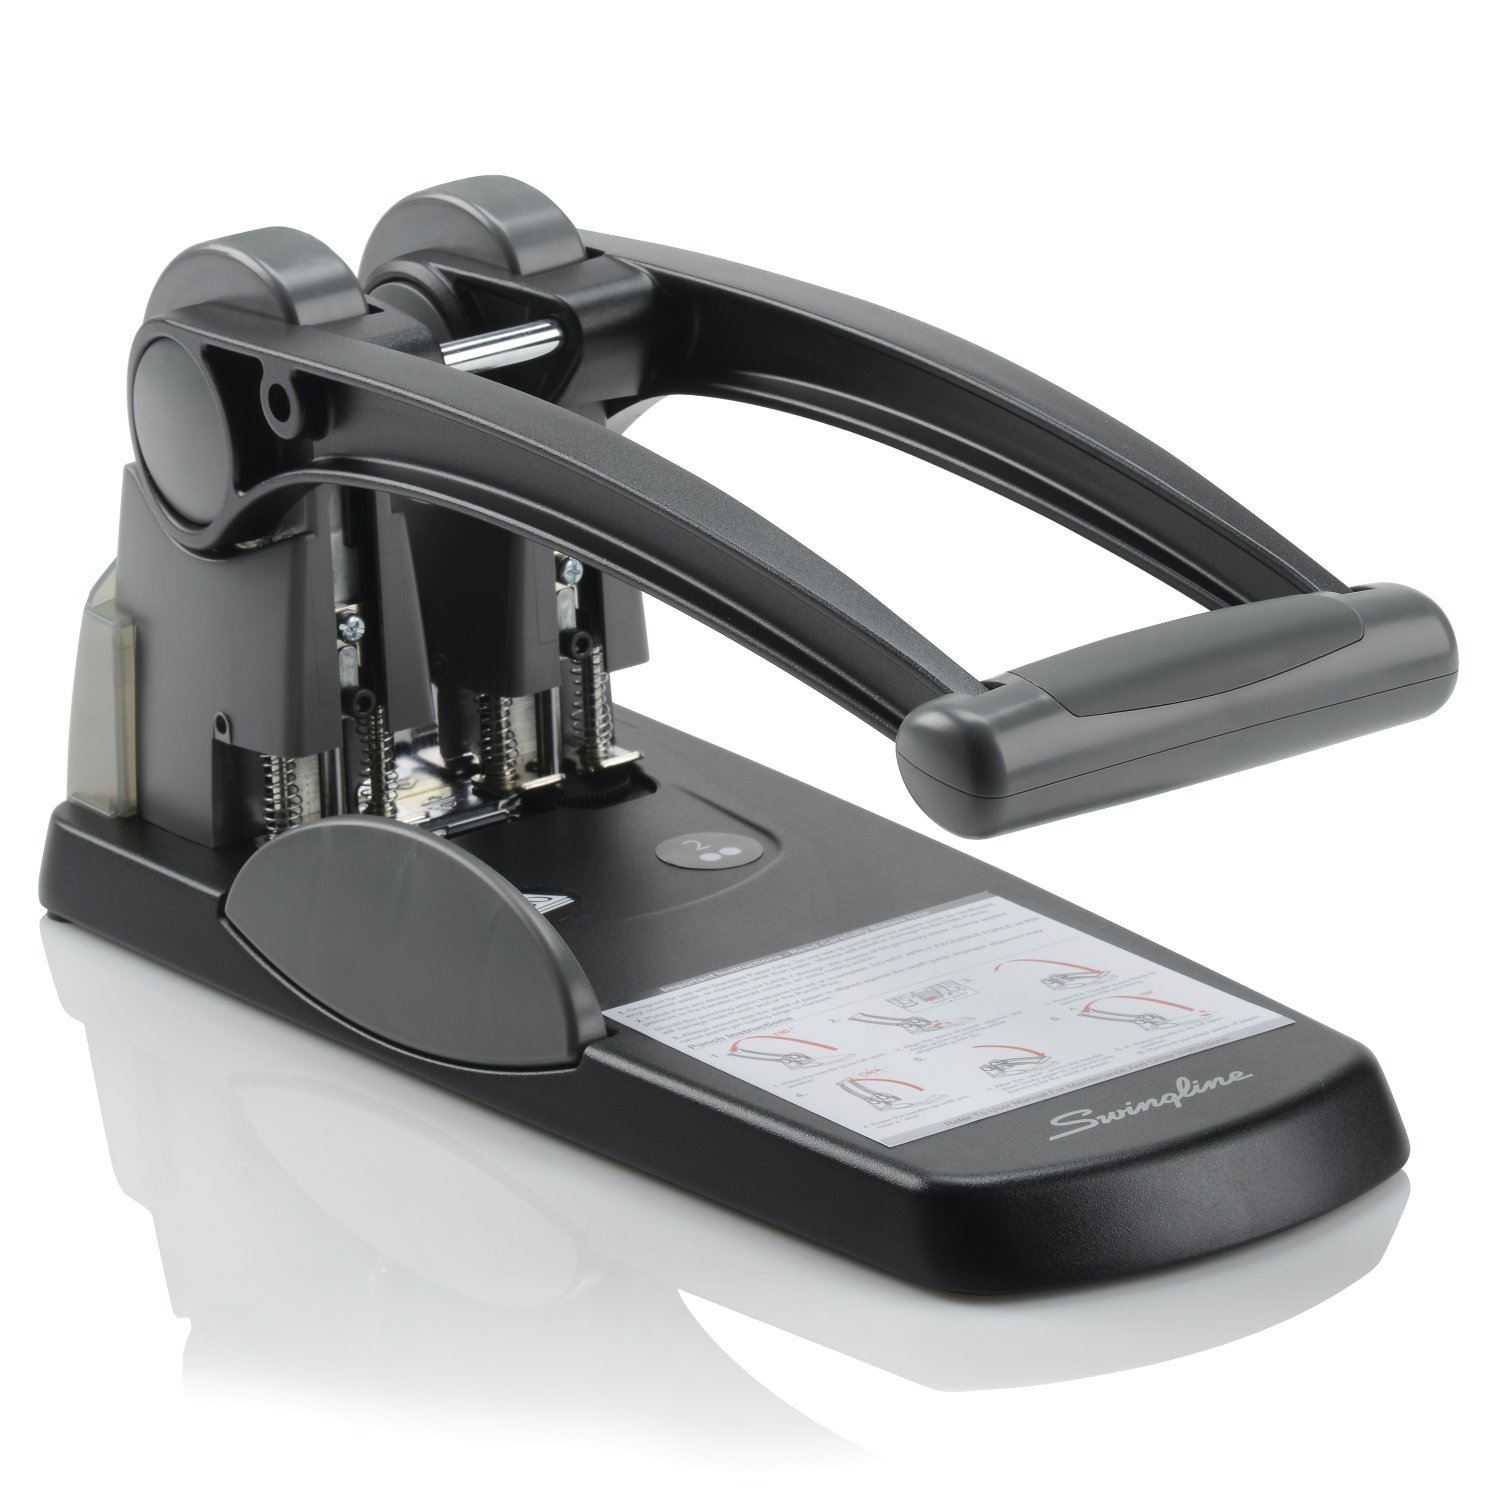 Swingline 2 Hole Punch, Extra High Capacity, Fixed Centers, 300 Sheets (A7074192)